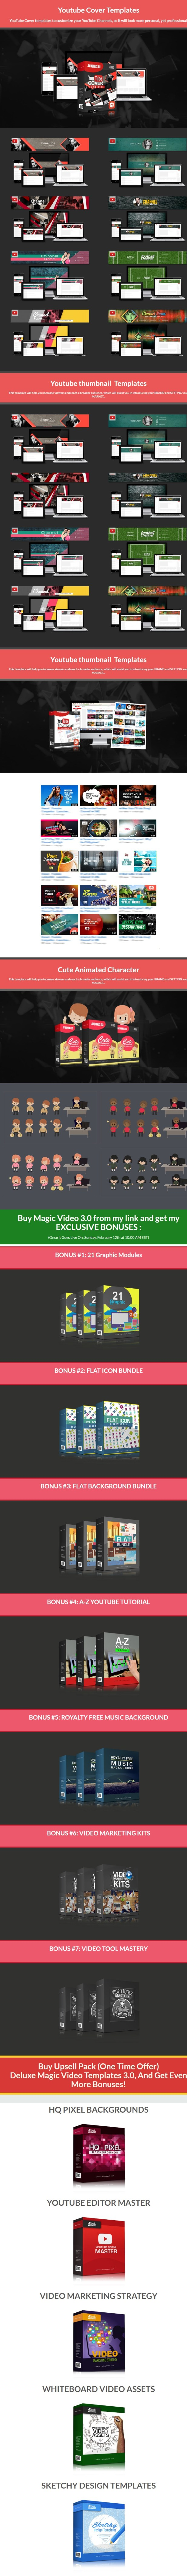 Magic Video Templates Pro 3.0 Review - Honest Review and Get Huge ...